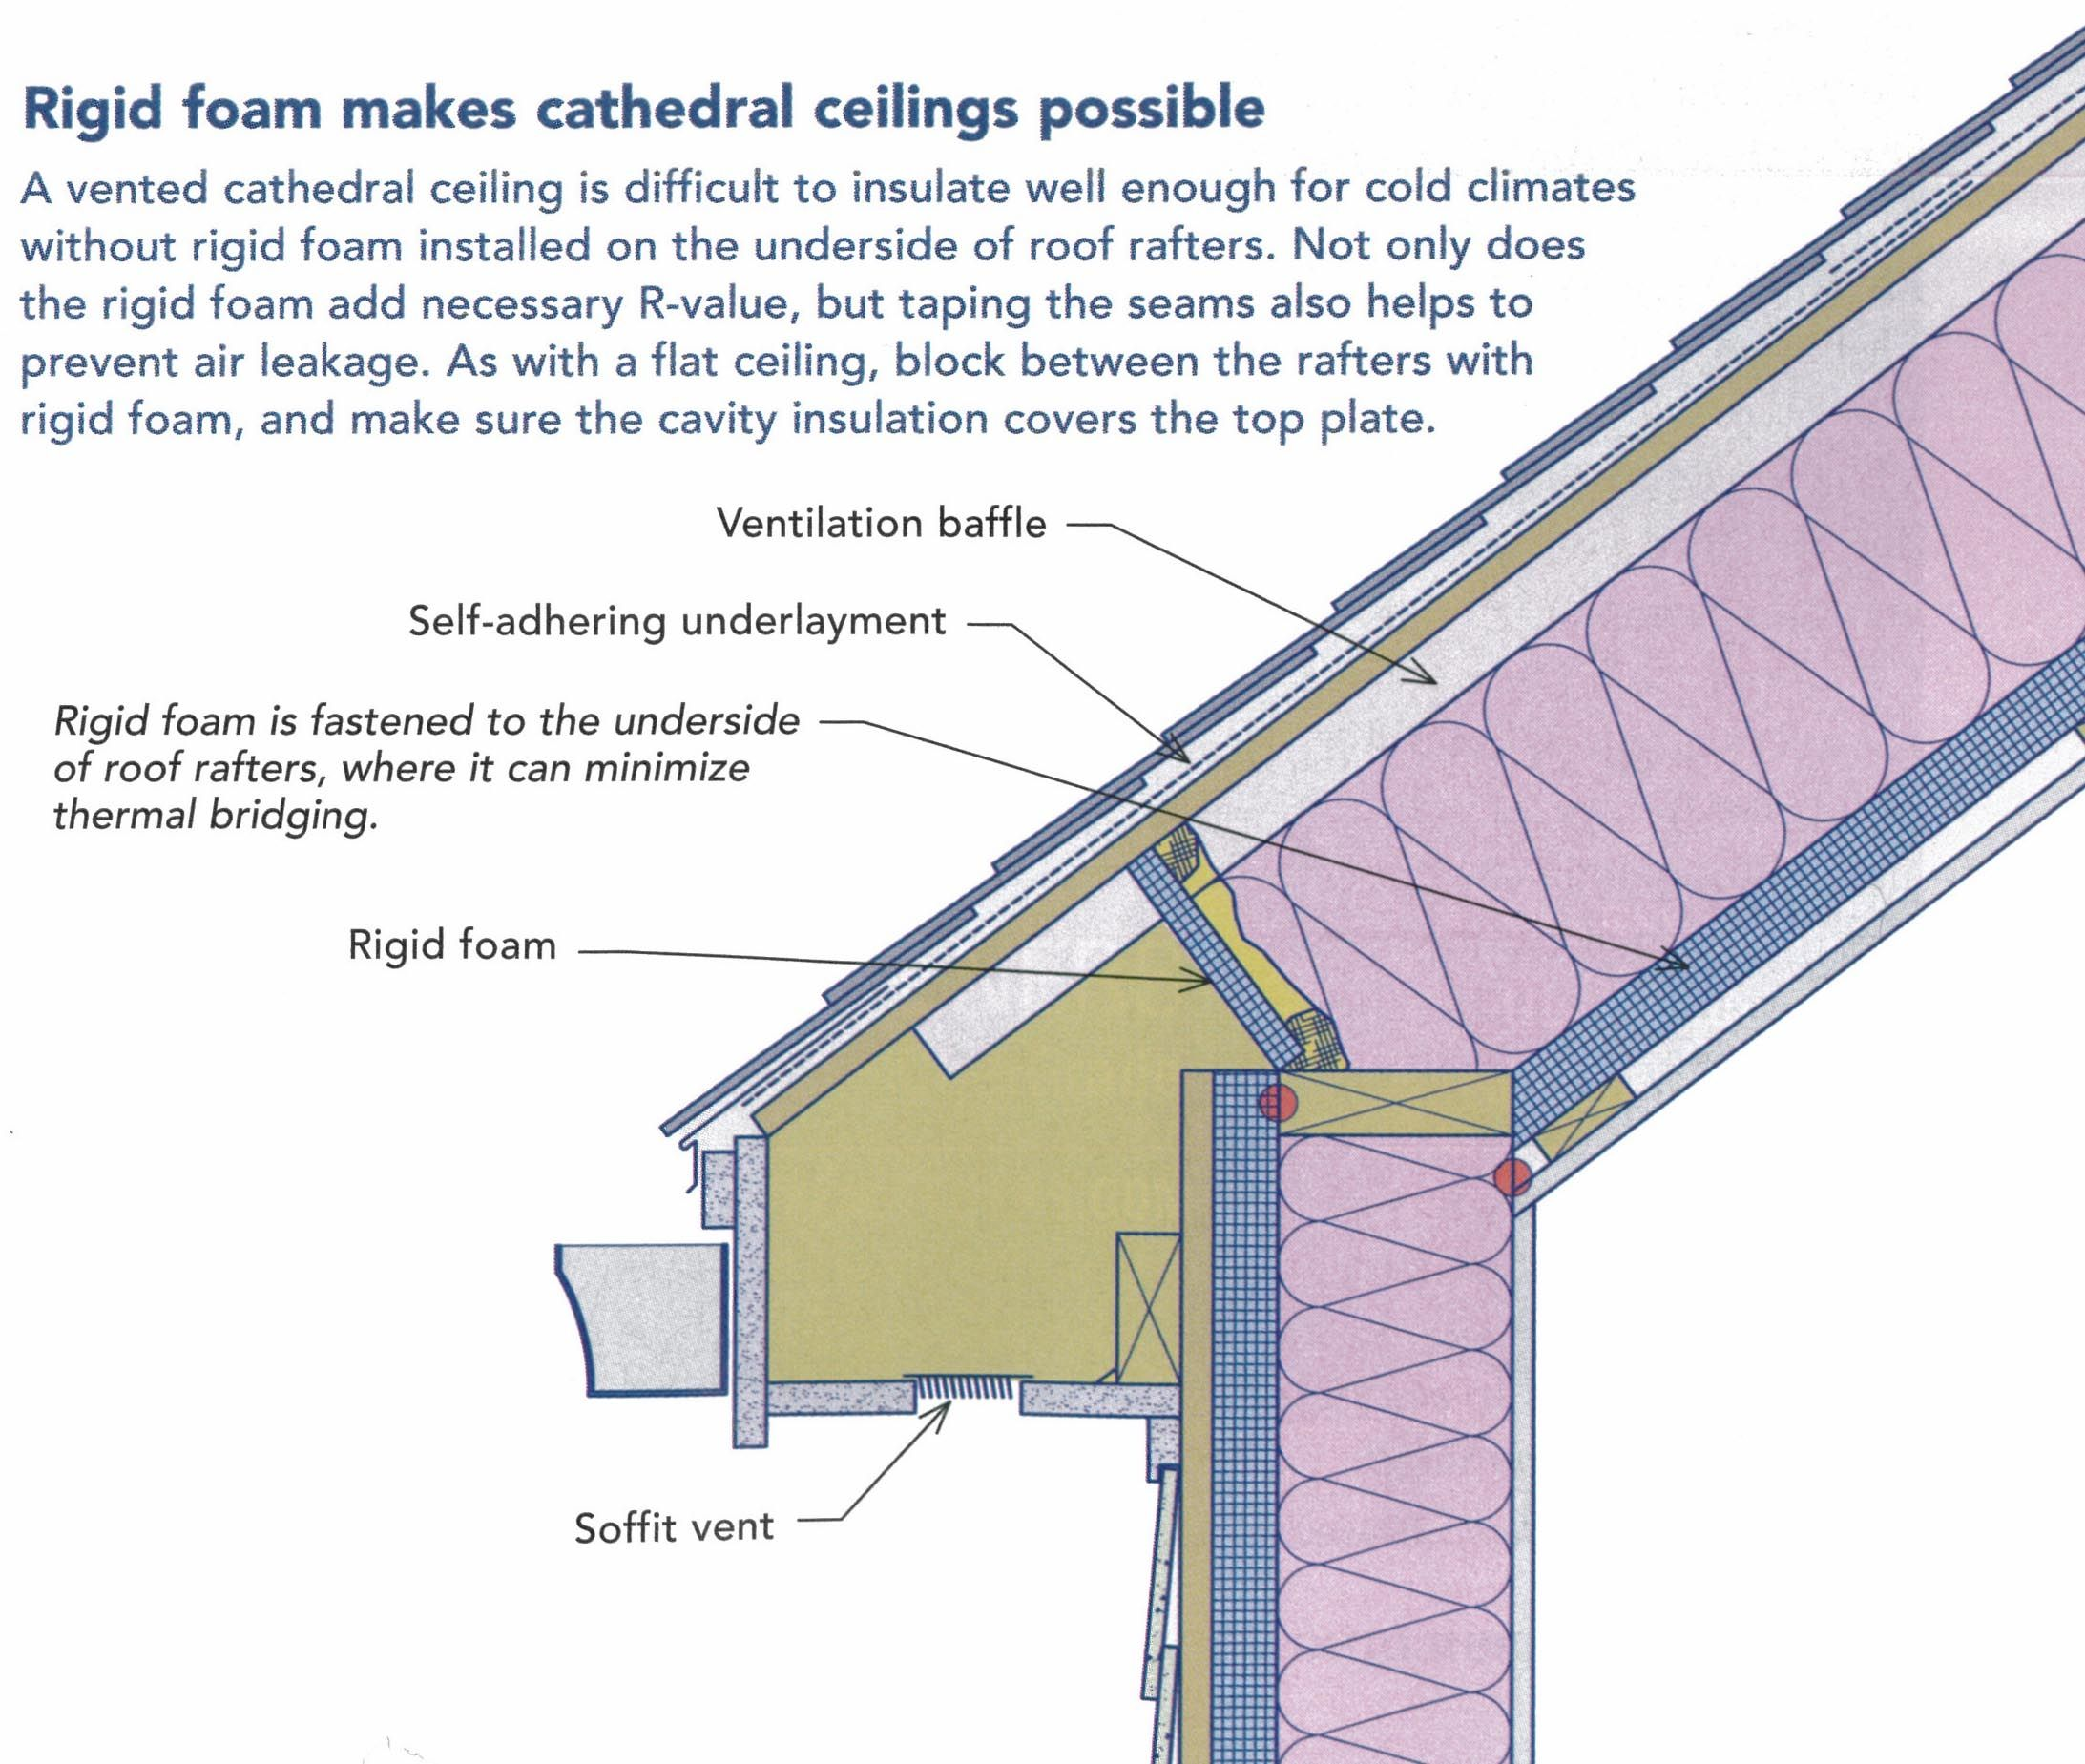 With Rigid Insulation Metal Roof With Rigid Rigid Insulation Cool Roof Cathedral Ceiling